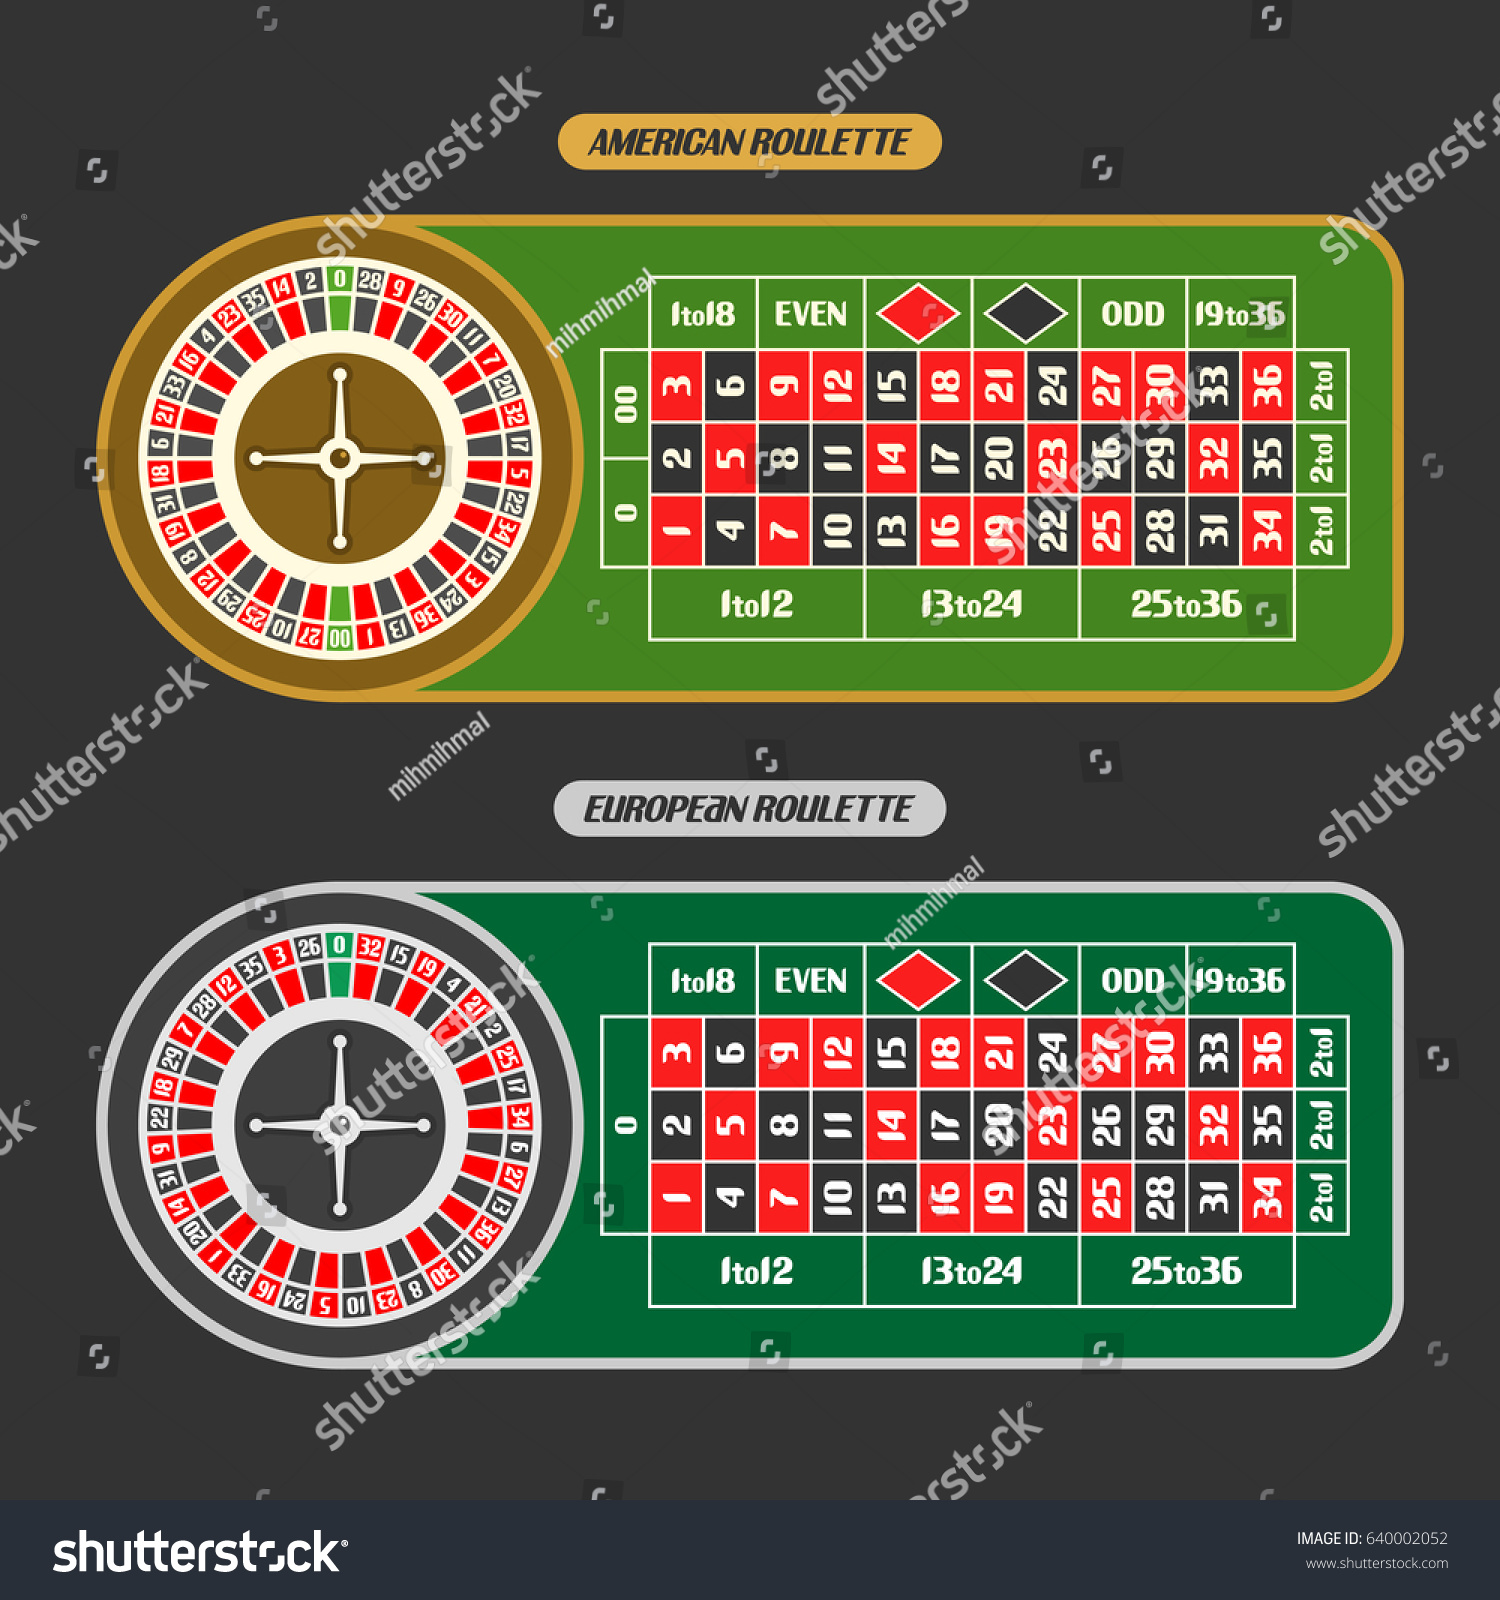 Traditional european roulette table vector illustration stock vector - Vector Image Of Roulette Table American Roulette With Double Zero And Simple Wheel Top View